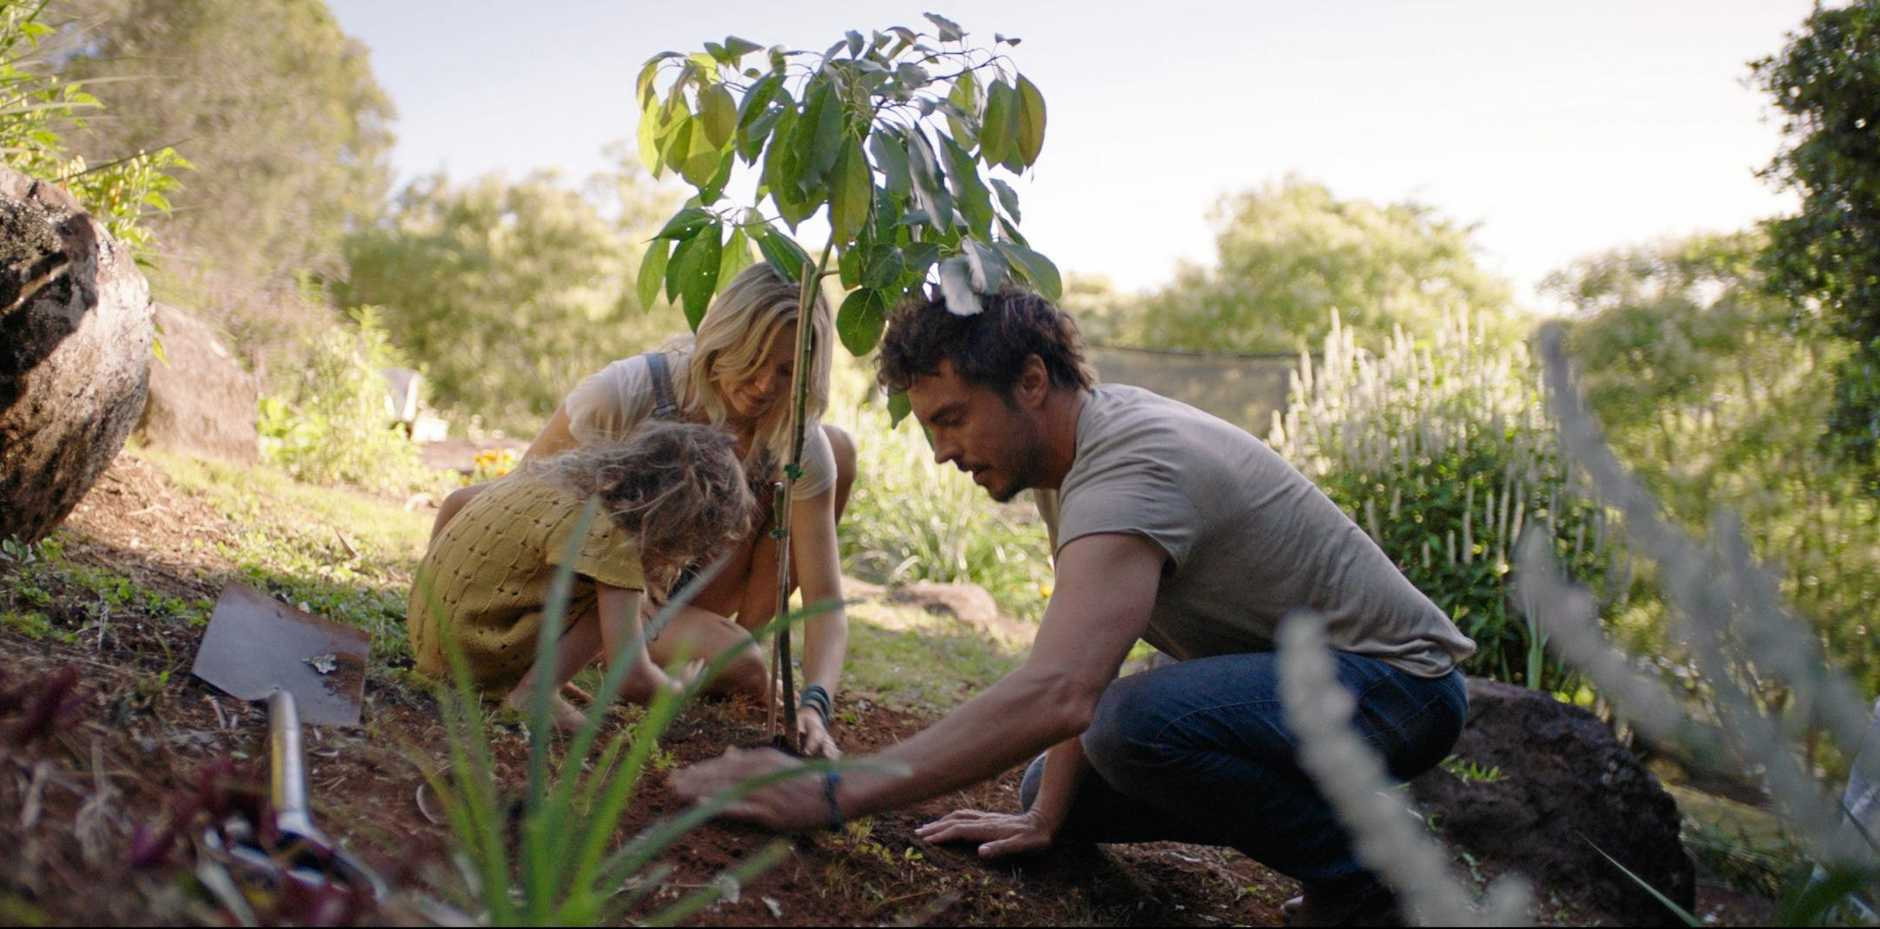 A still from the film sustainability documentary 2040 featuring filmmakers Zoe and Damon Gameau and their daughter Velvet.